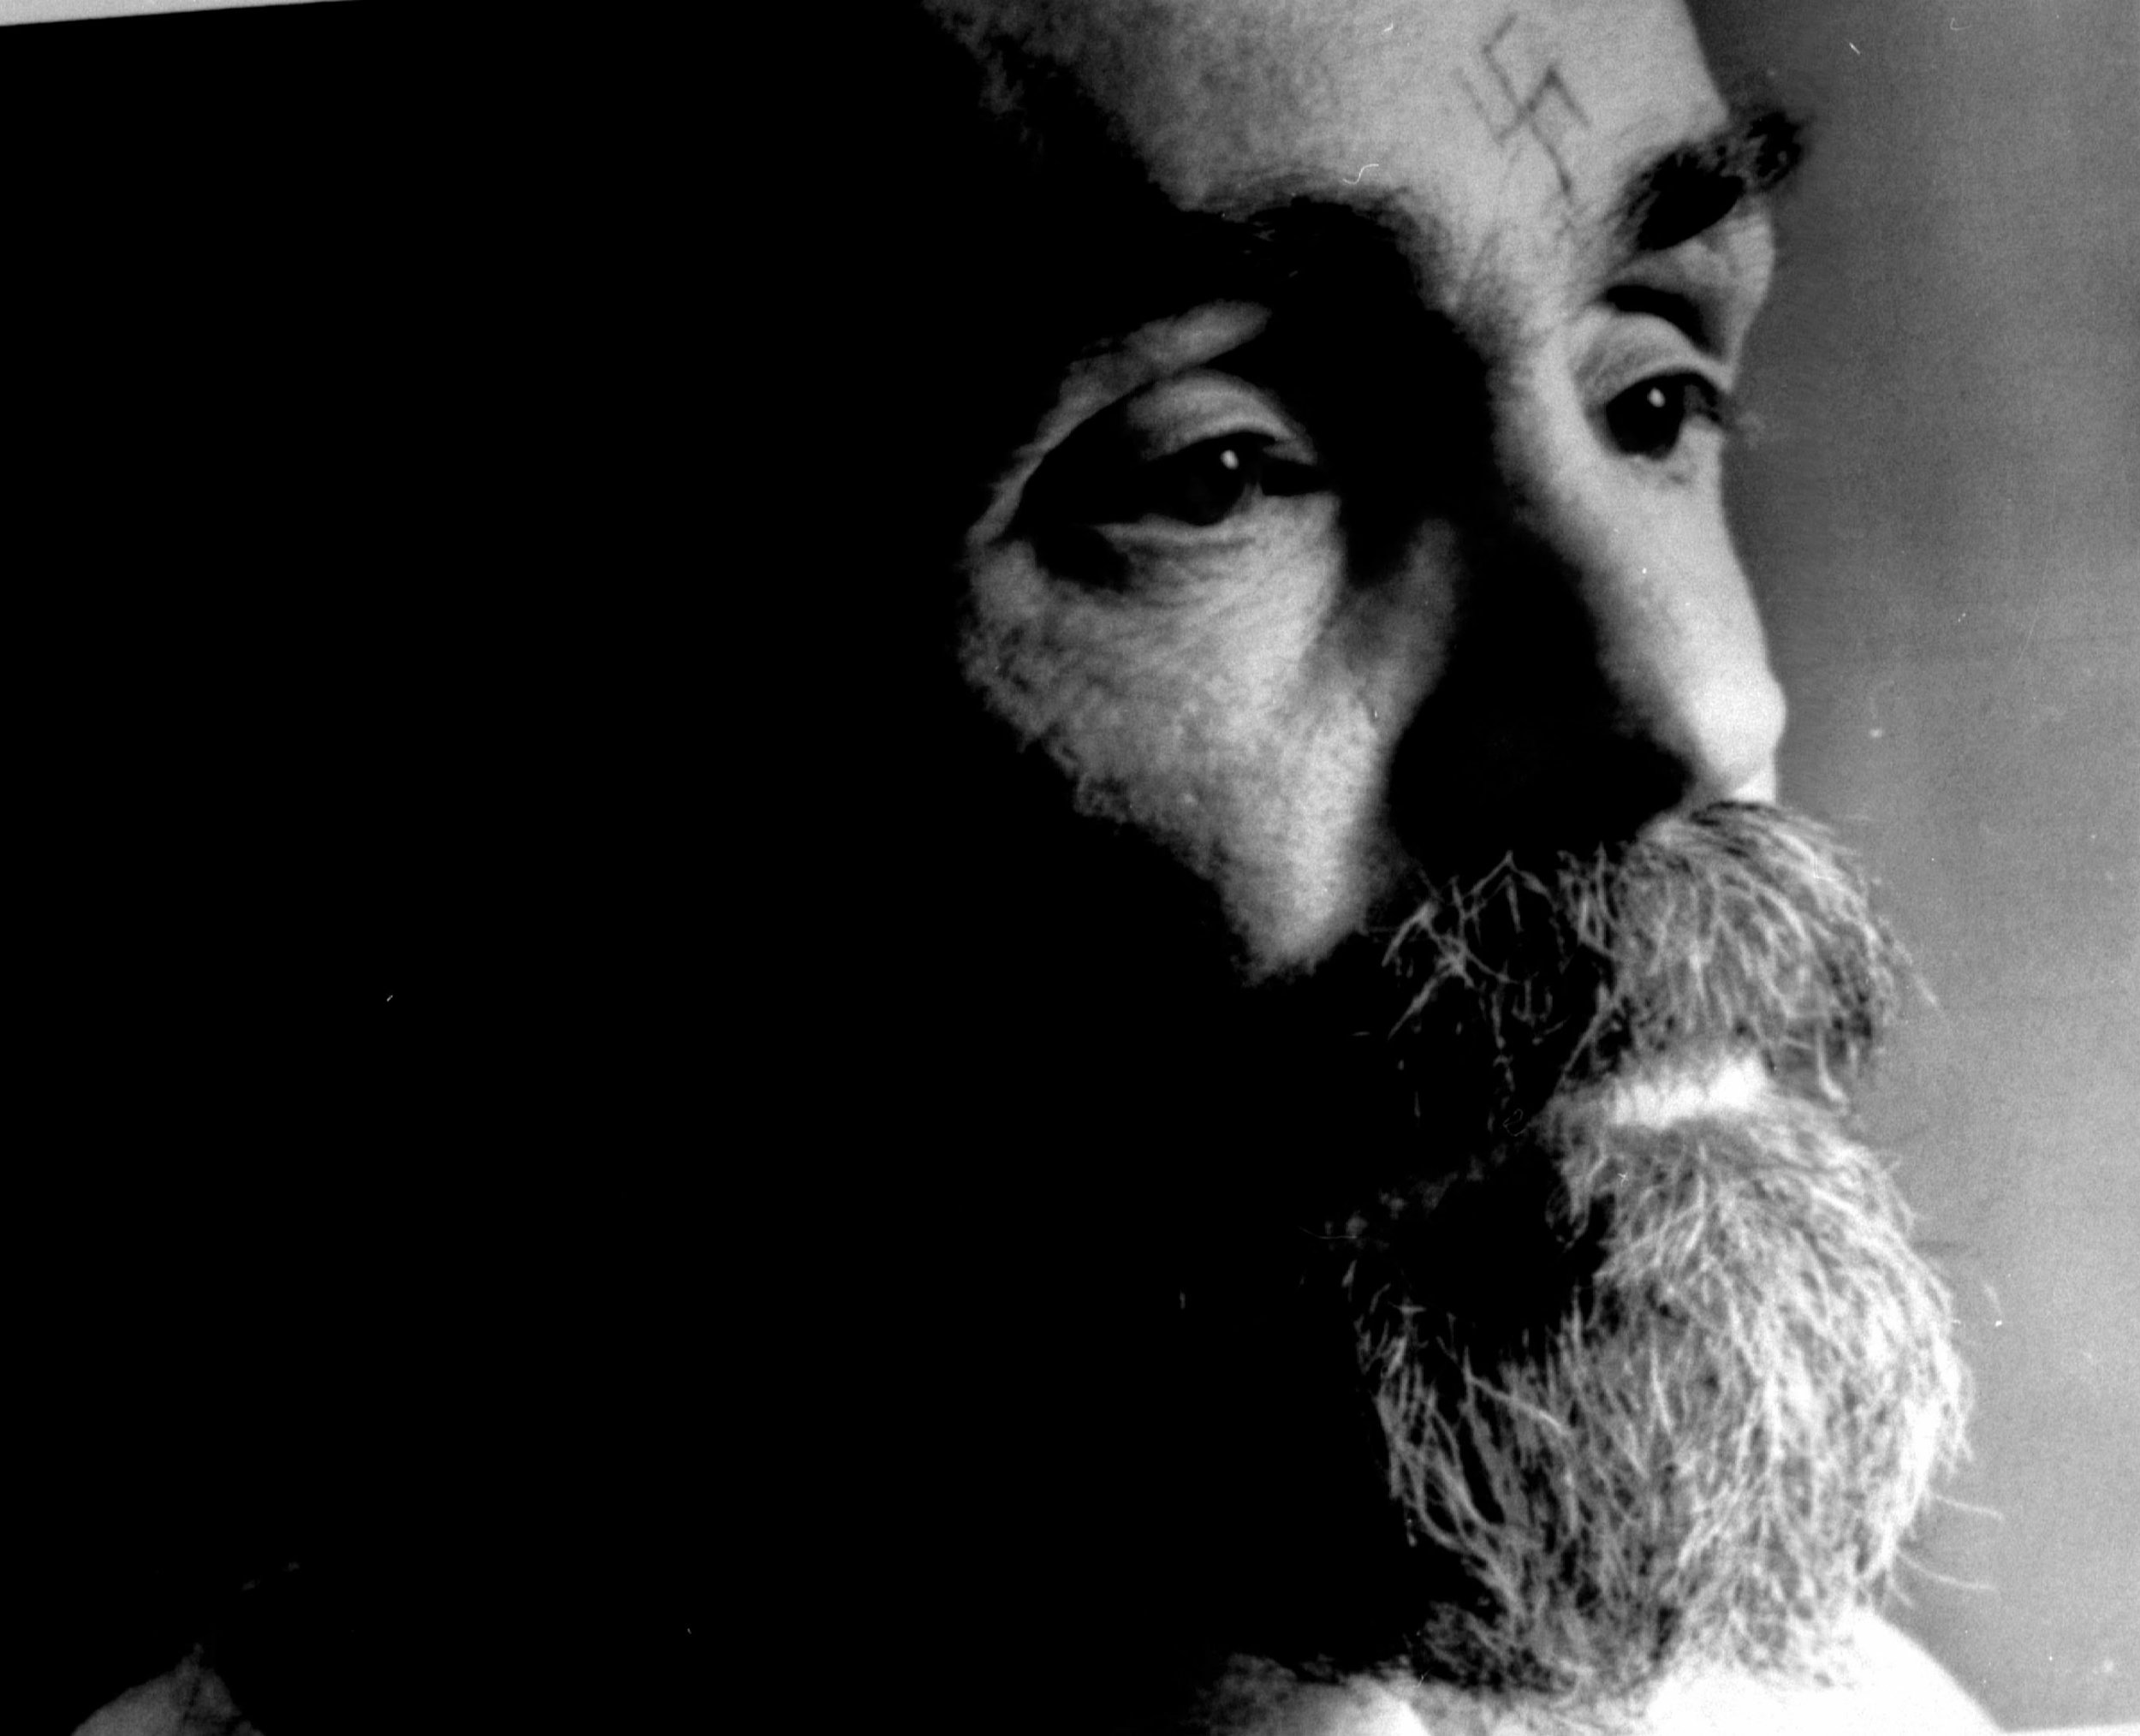 Charles Manson Quotes: The Madness and Cruelty of America's